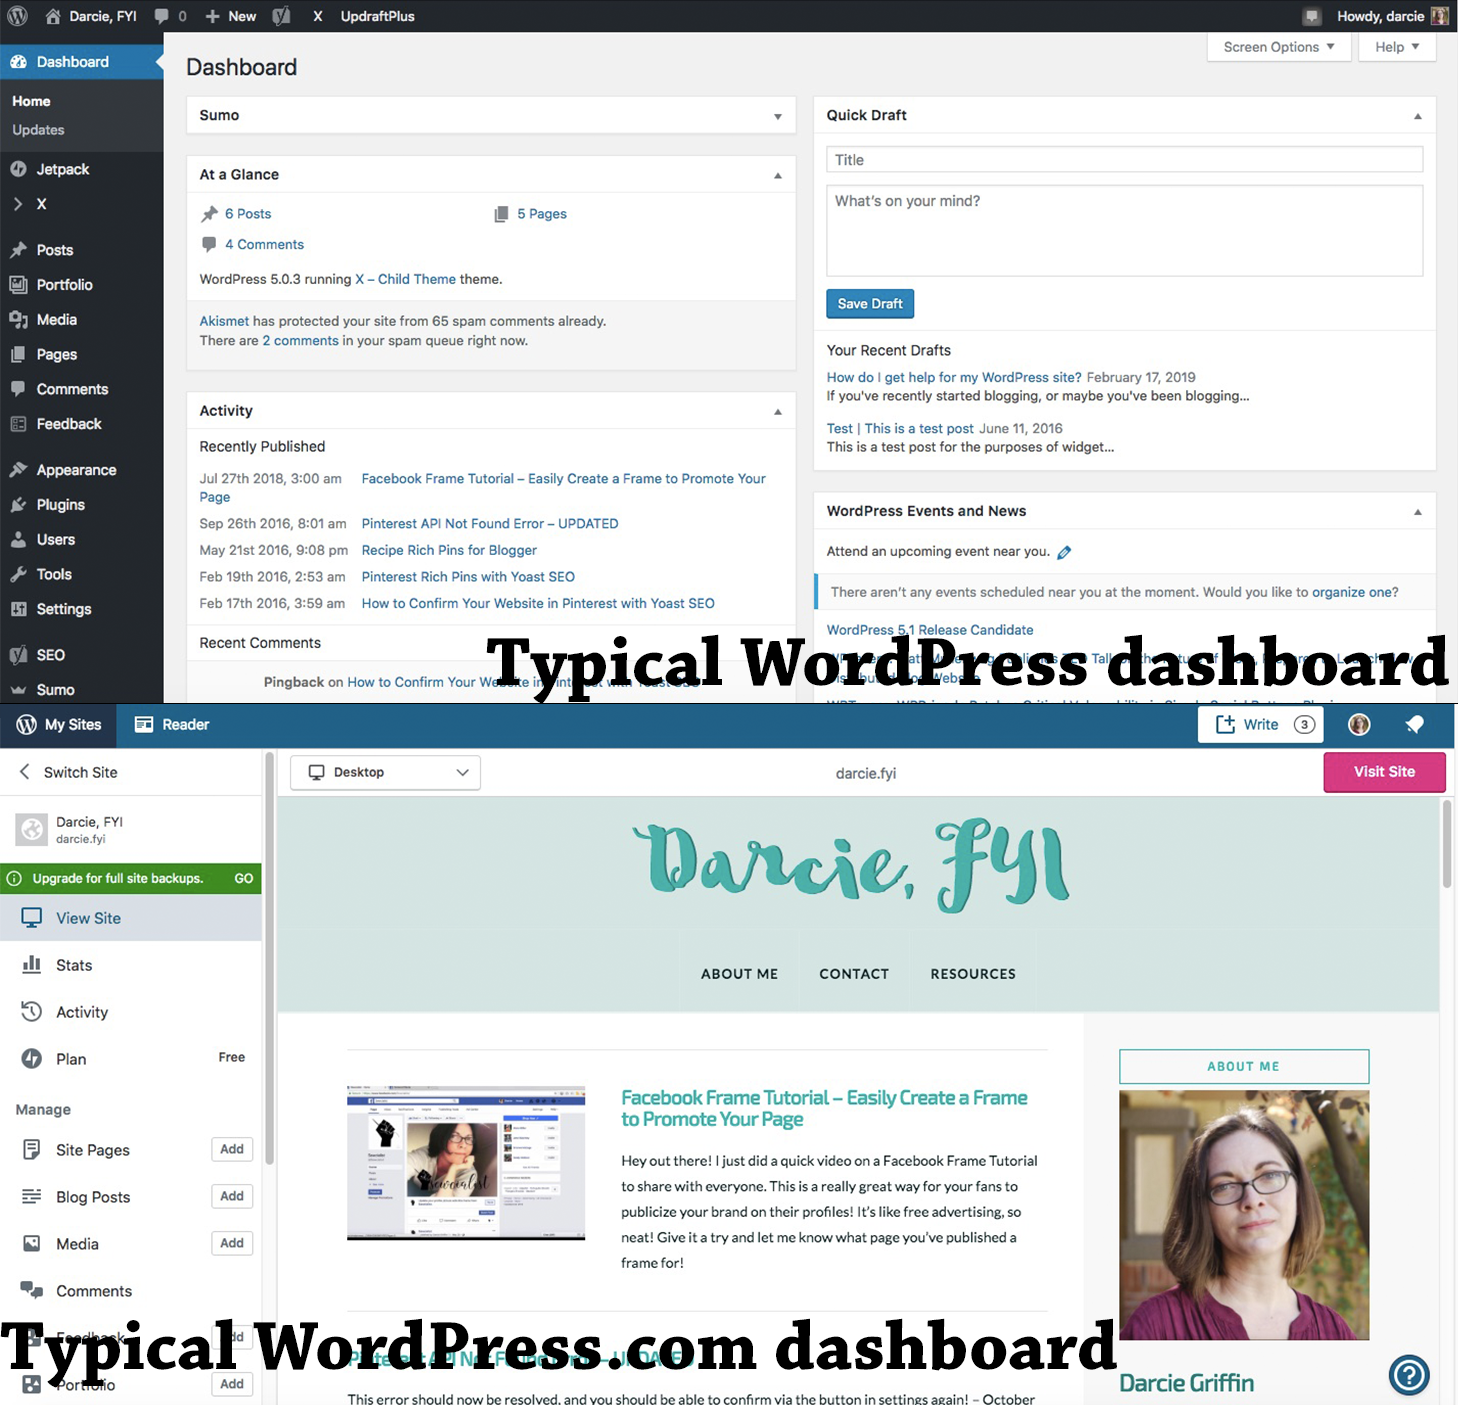 WordPress and WordPress.com dashboard comparison image